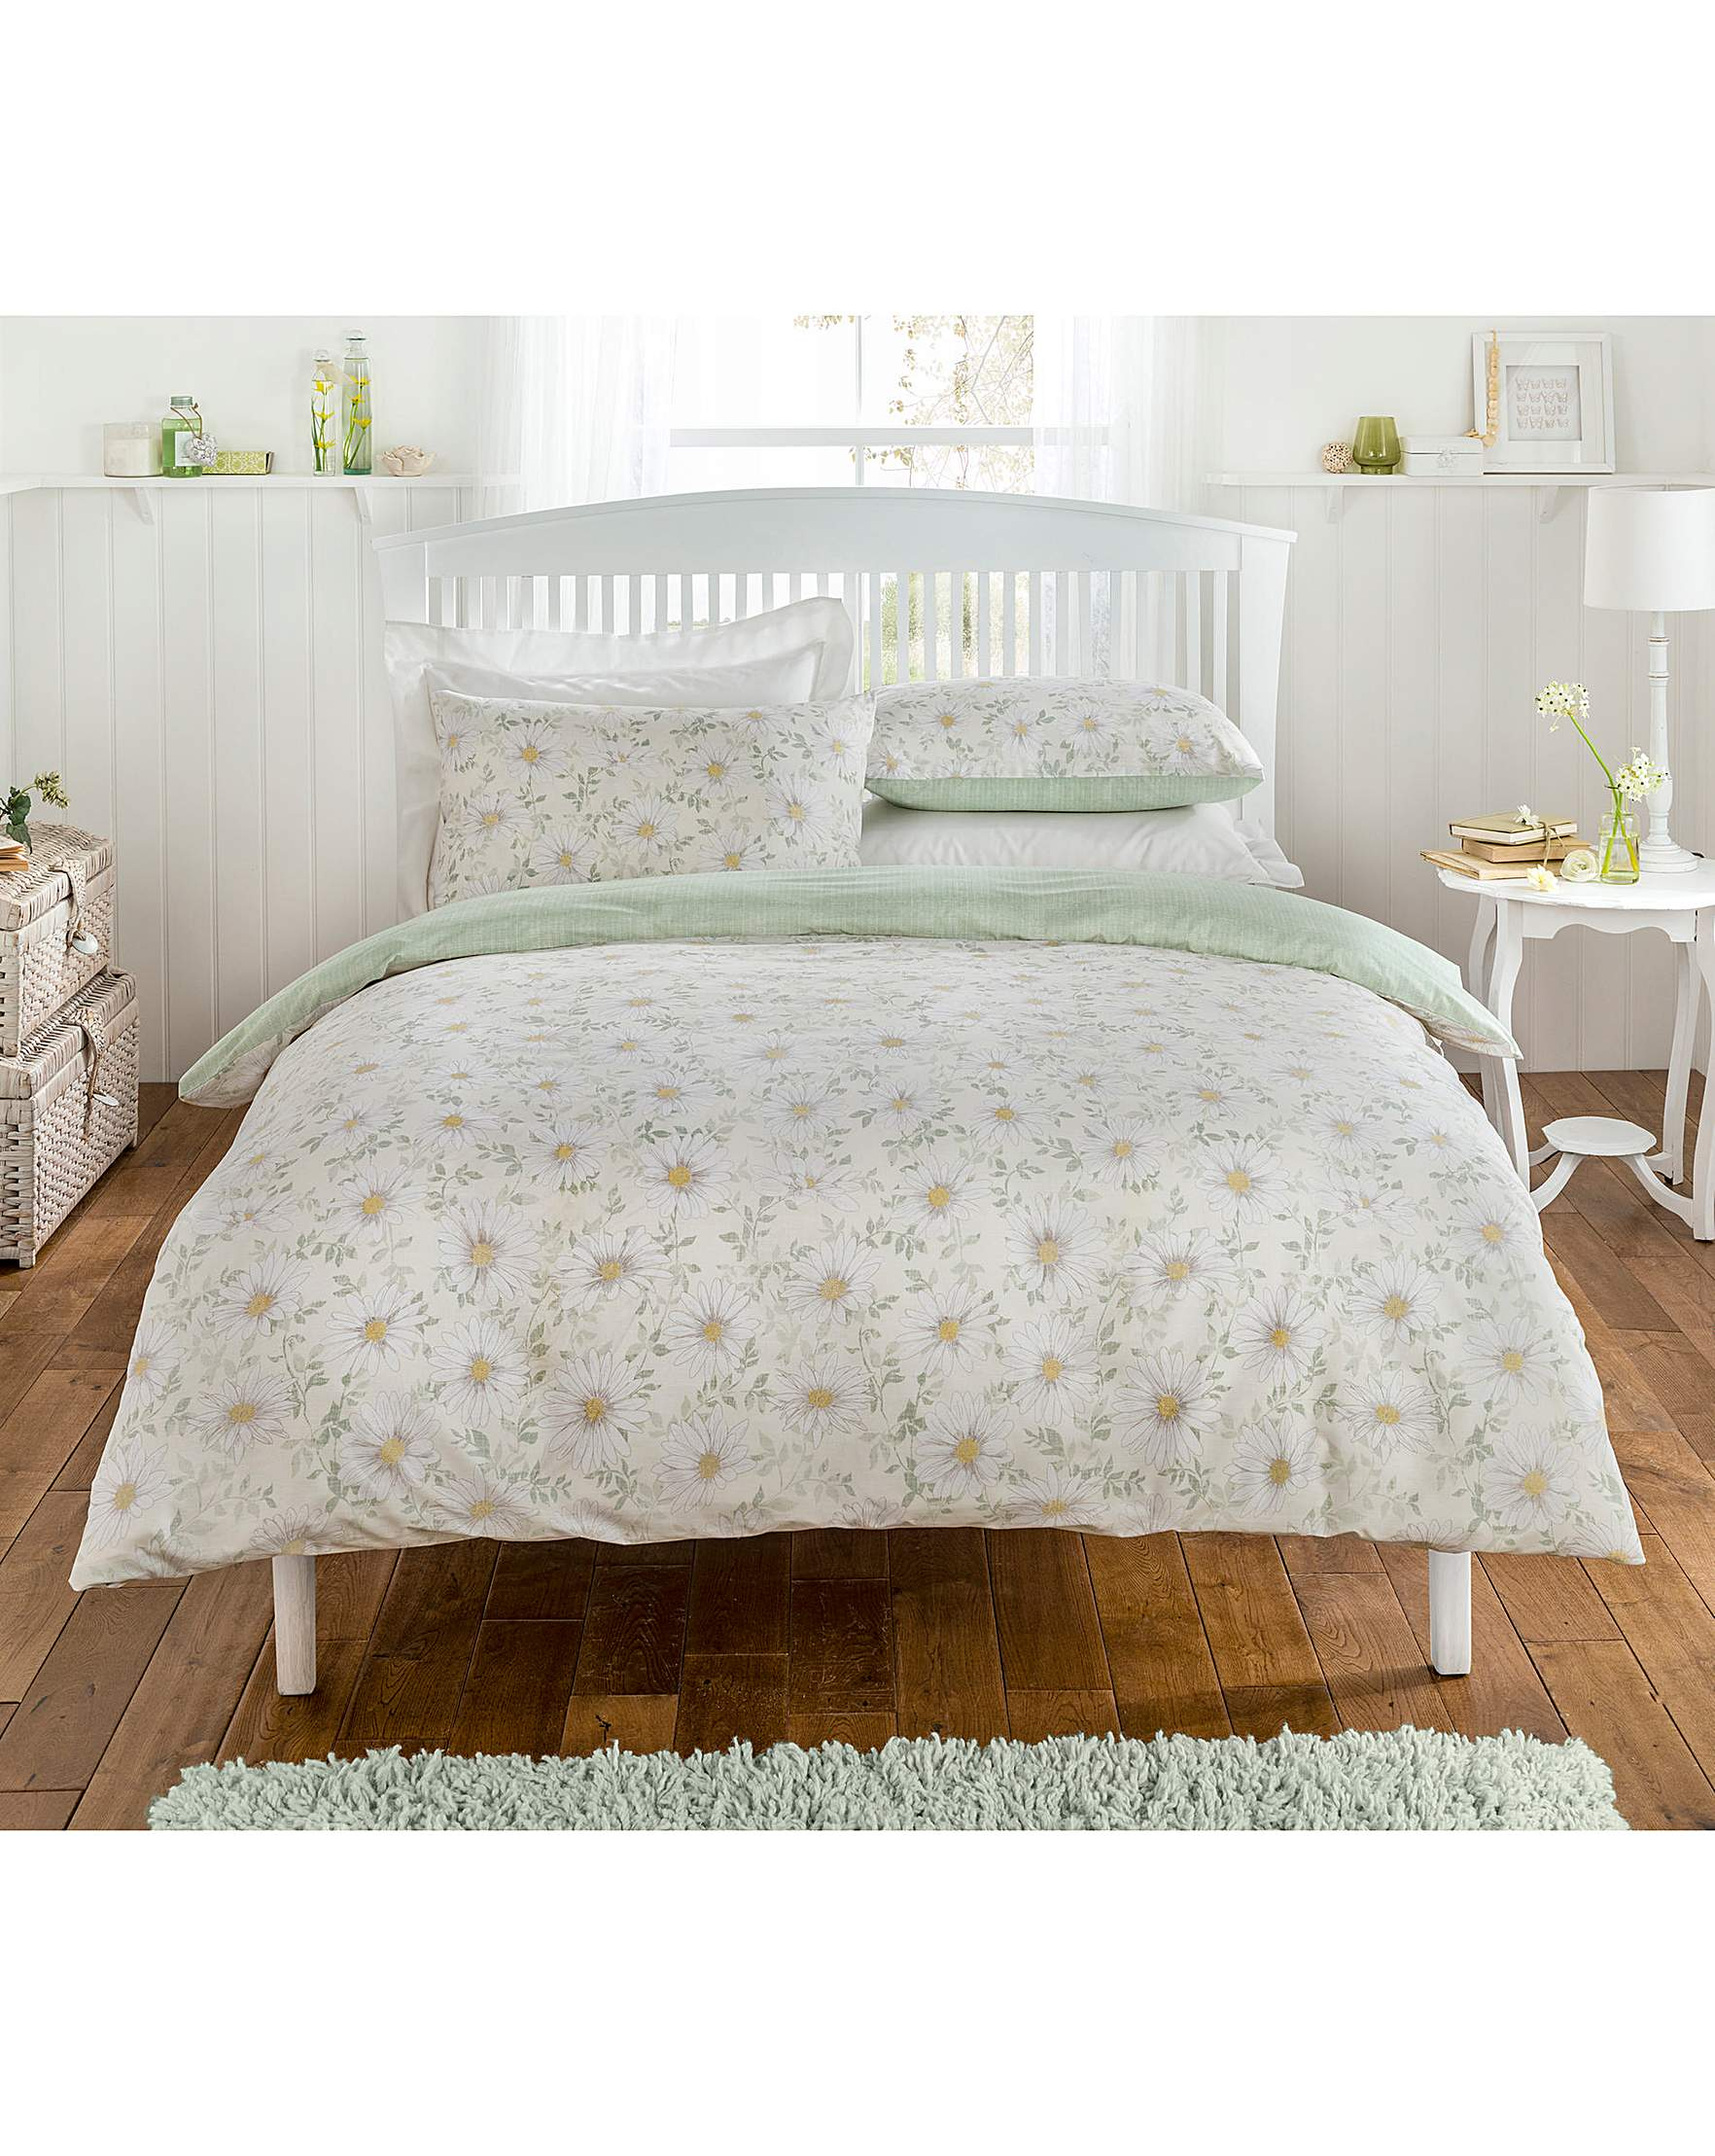 this knit is home cover duvet comforter pin i gorgeous it want cable decor